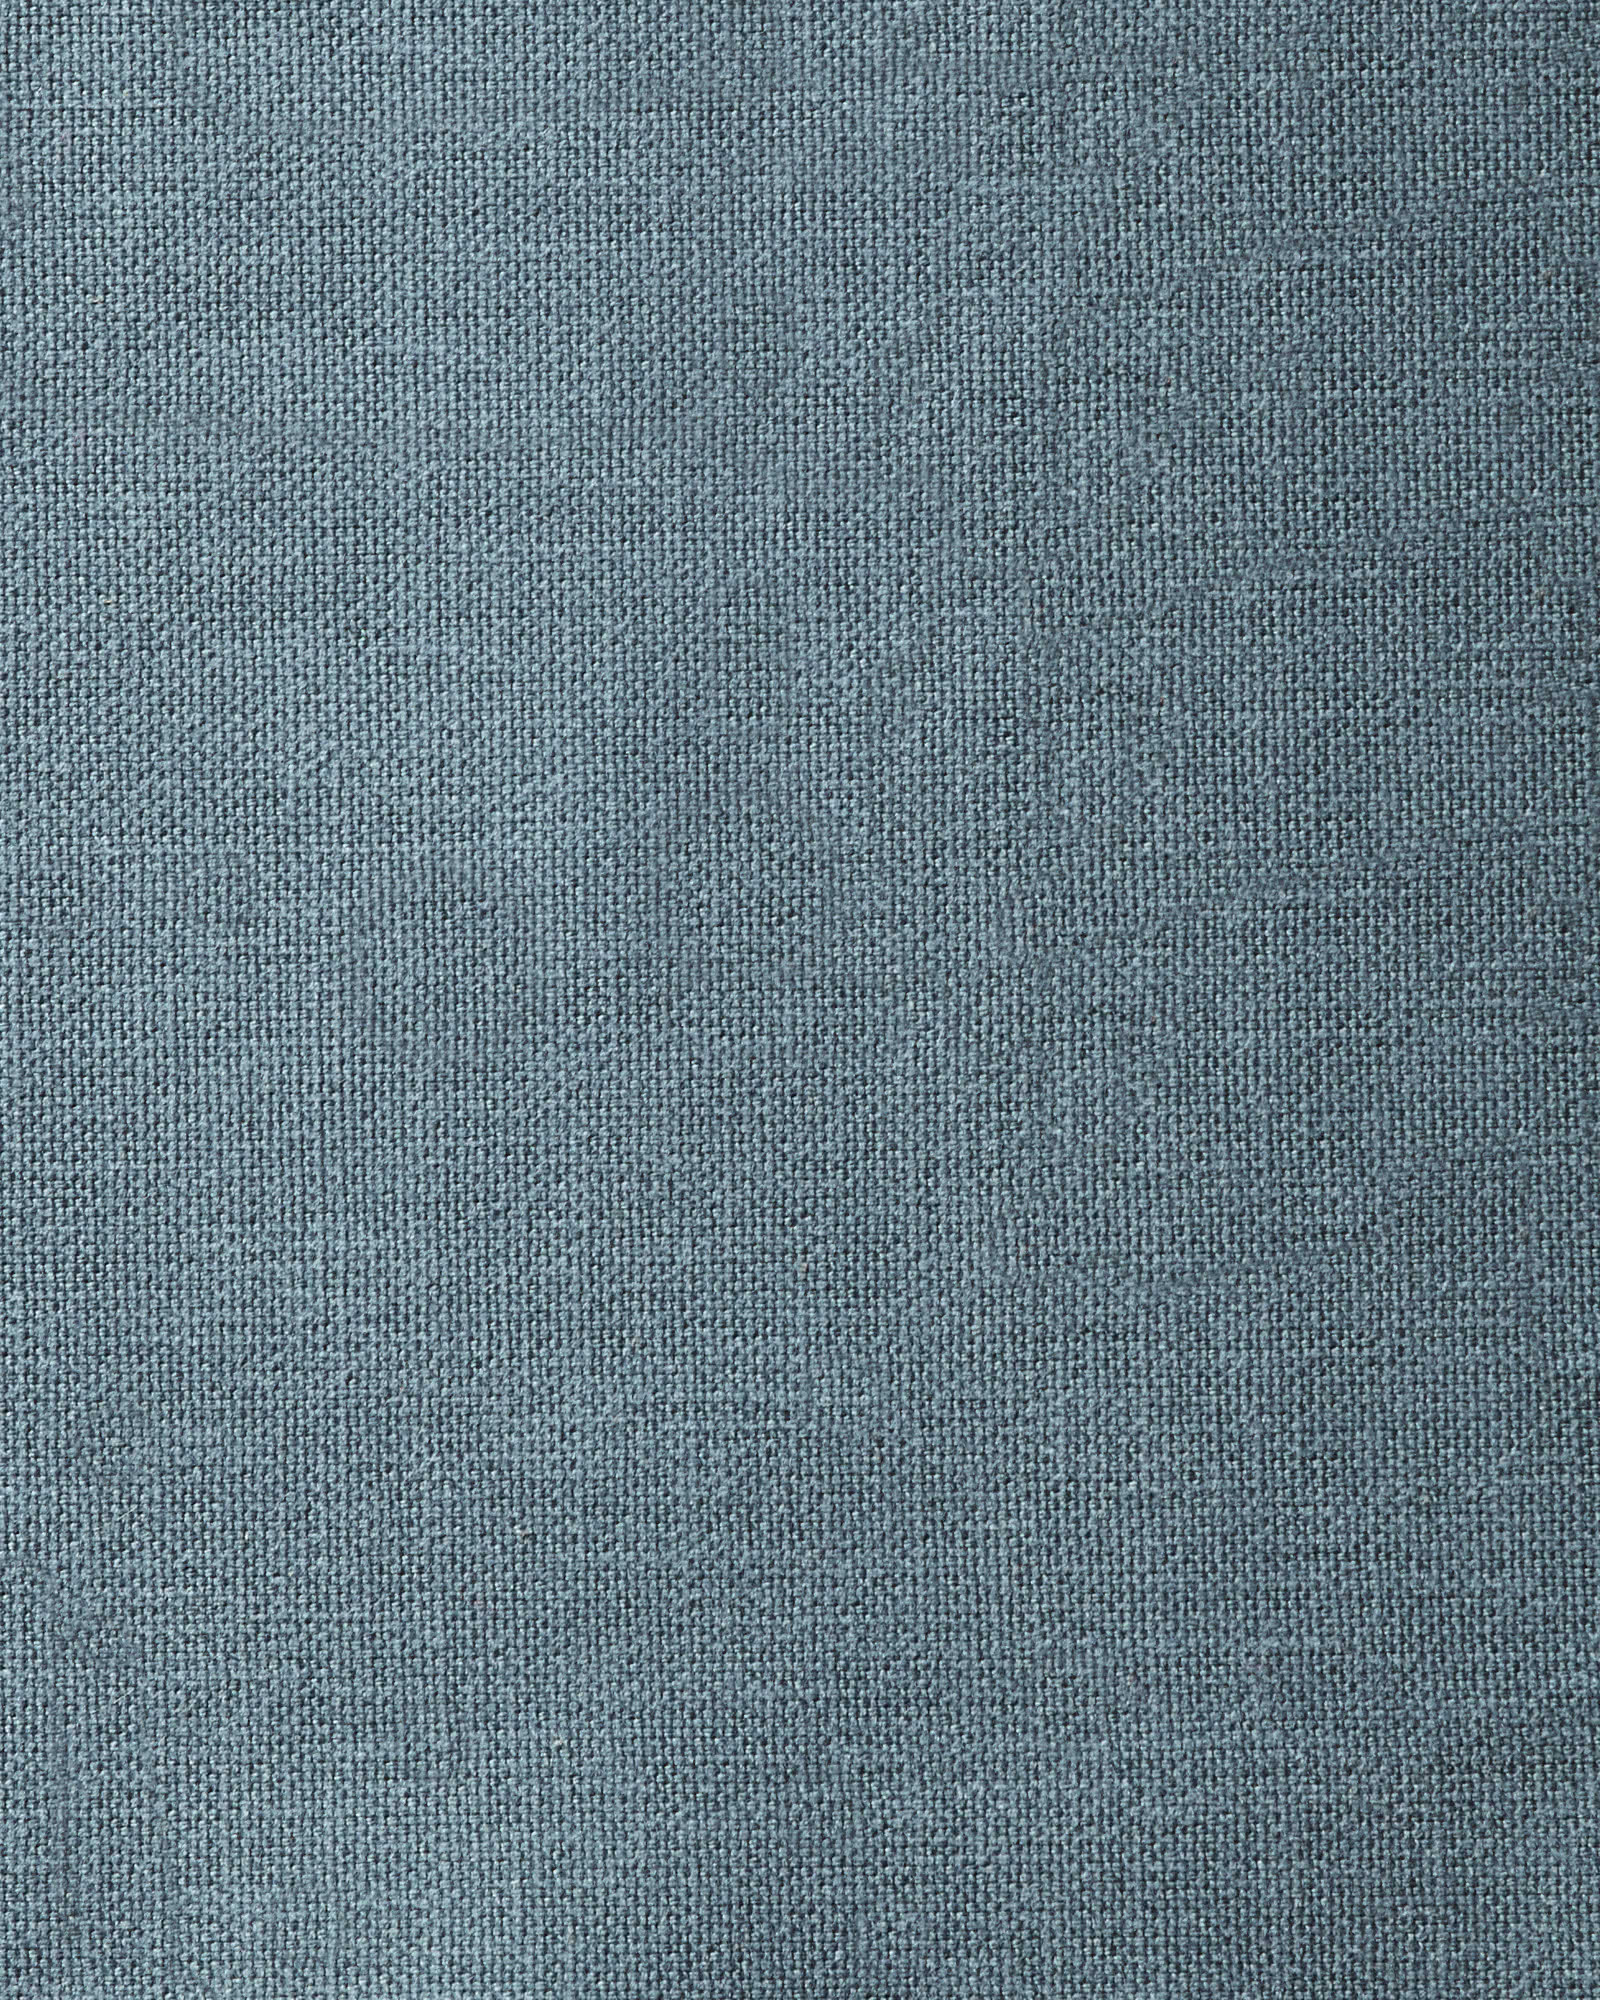 Brushed Cotton Canvas,